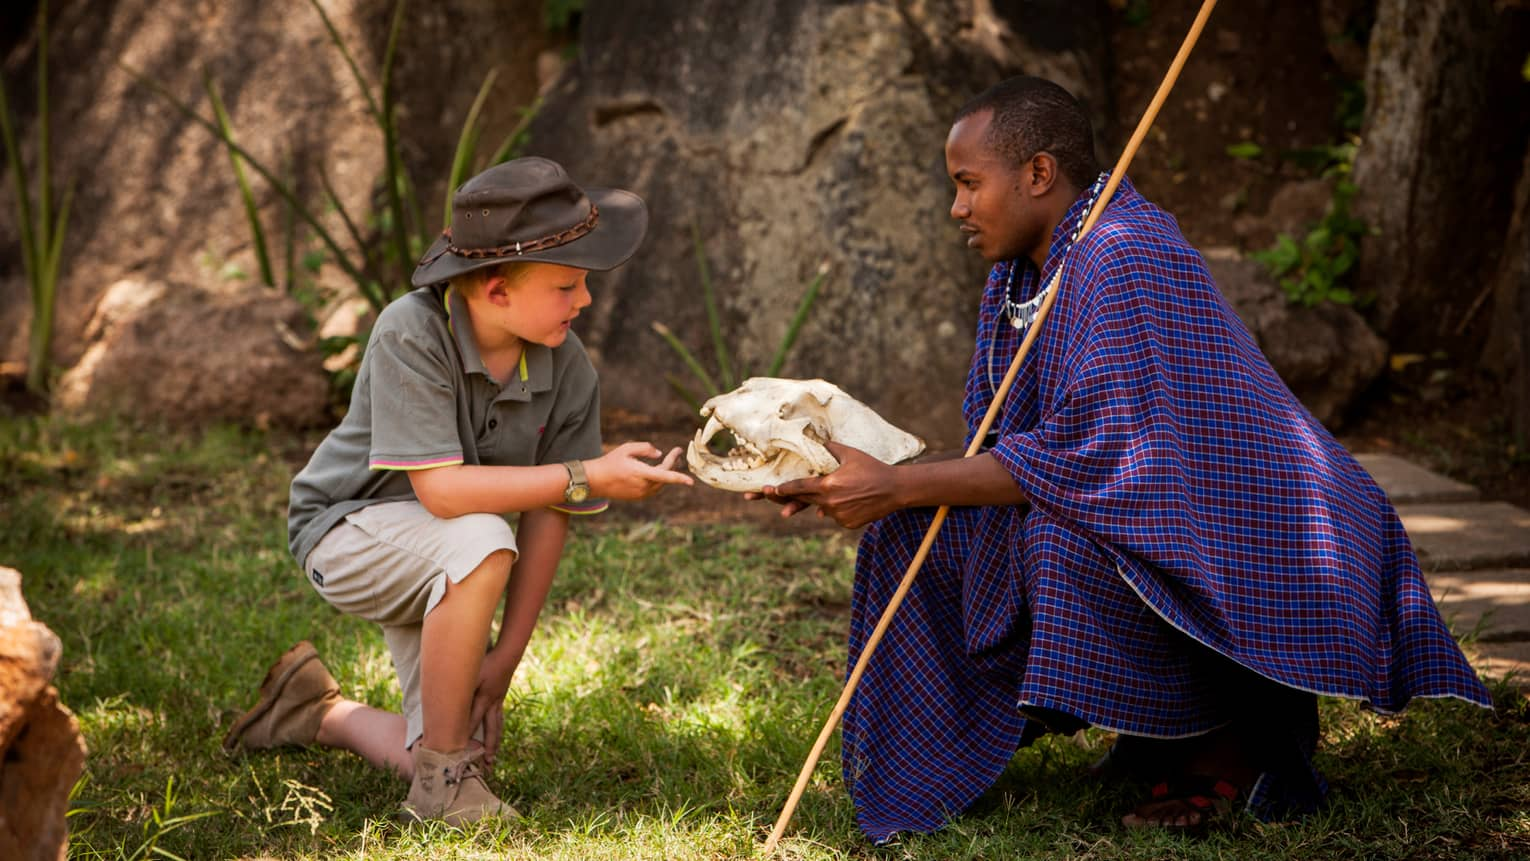 Maasai guide shows large skull to young boy wearing safari hat